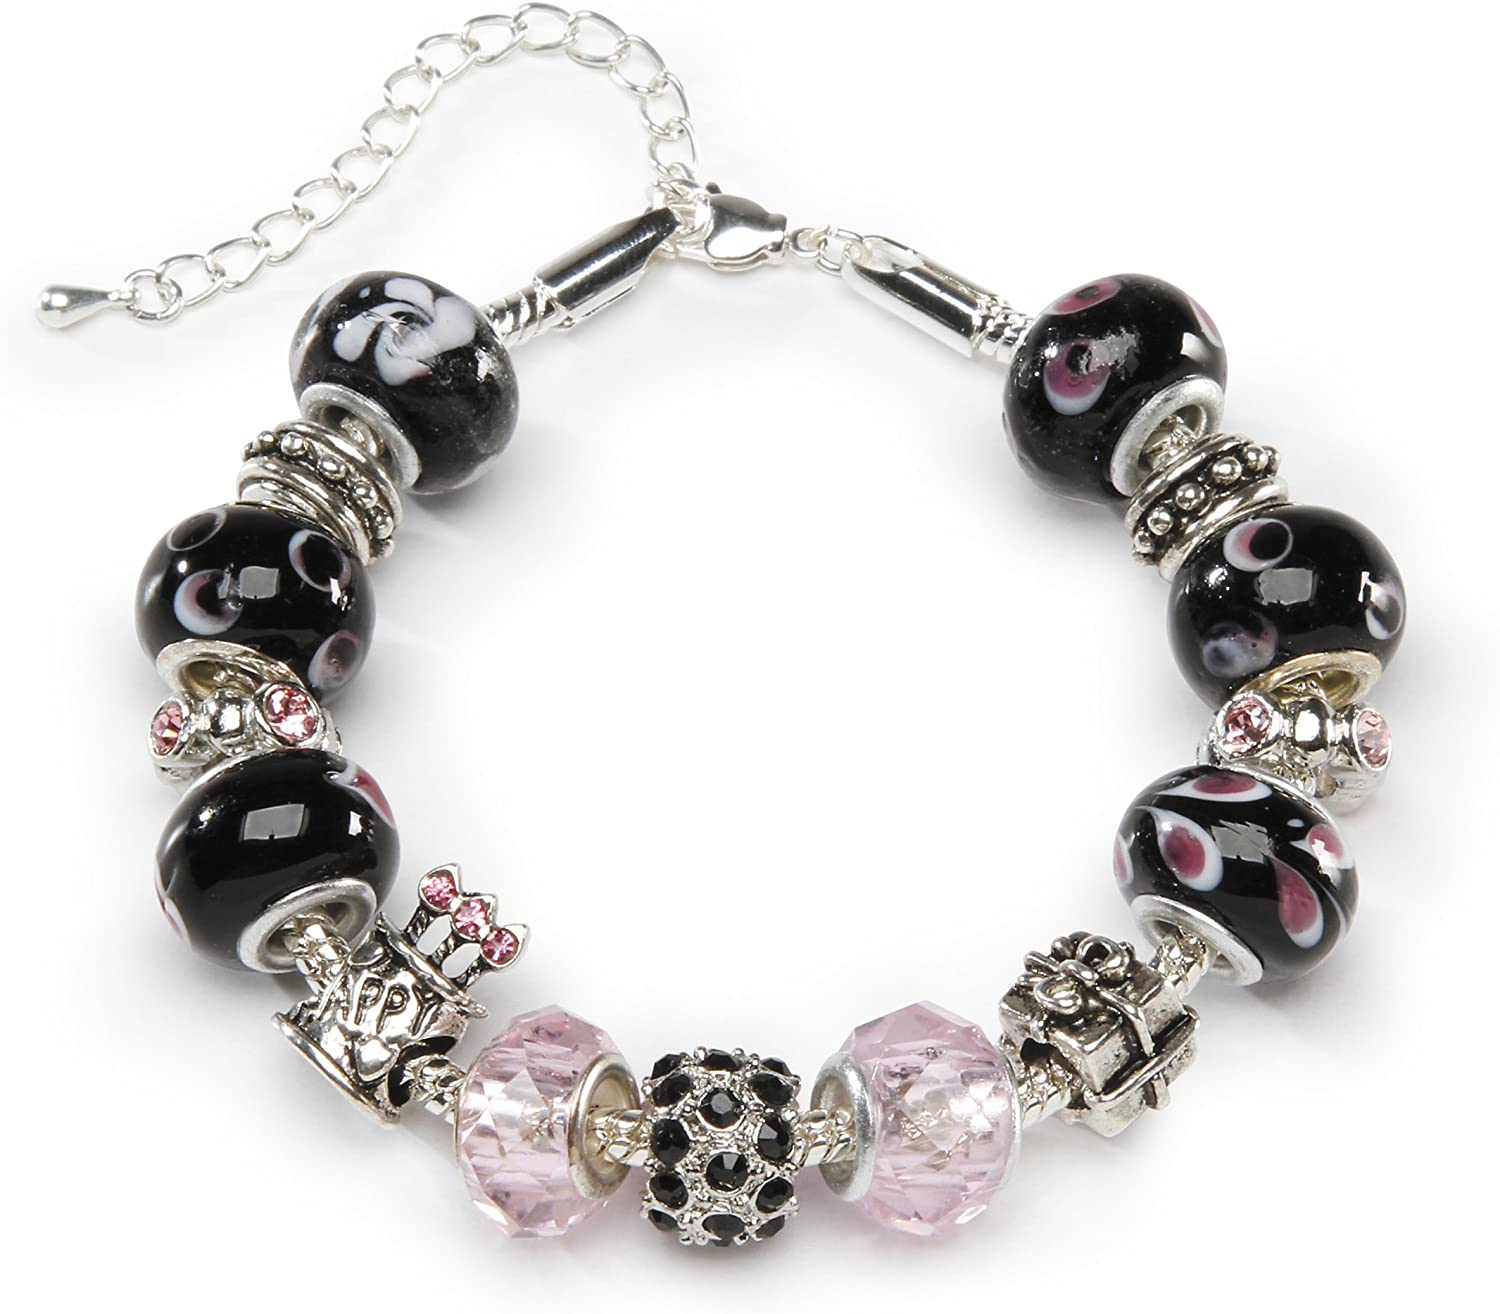 Darice 1999-5285 Mix and Mingle Beads and Bracelet Kit - Birthday, Multicolor, One Size, 1ct